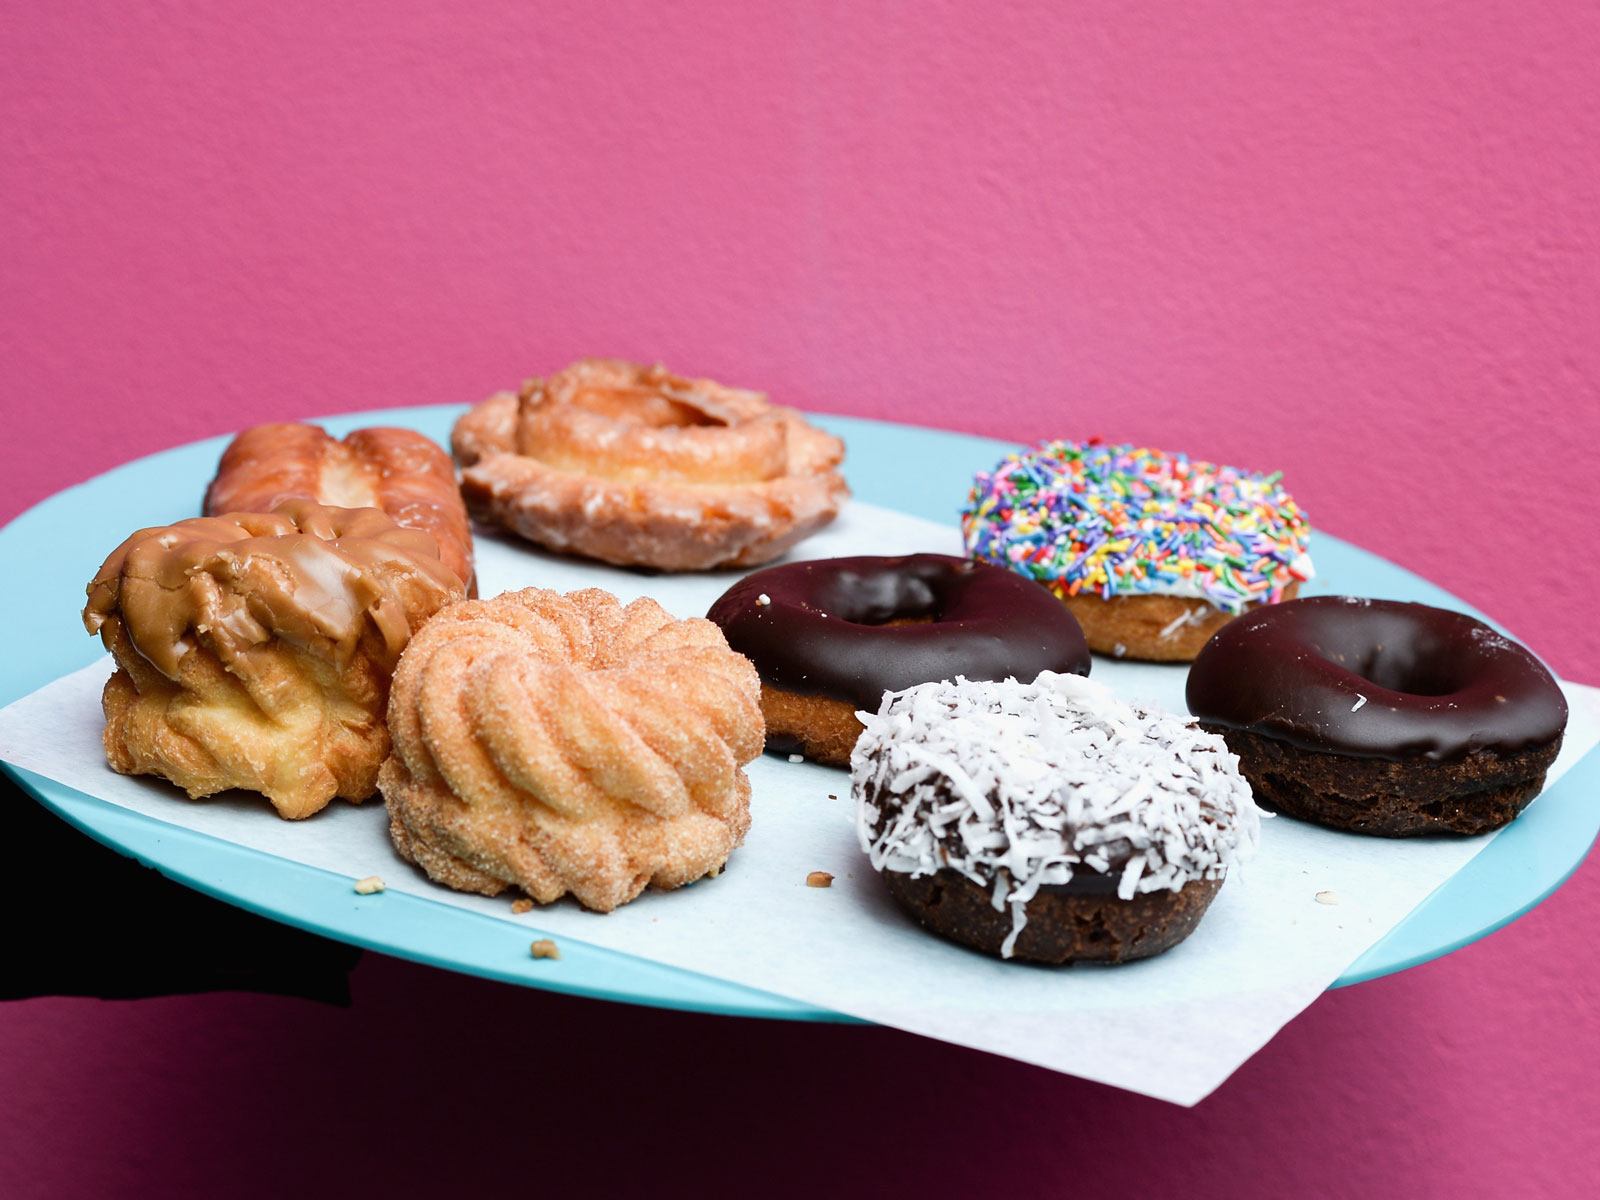 Where to Stop on a Portland Donut Crawl